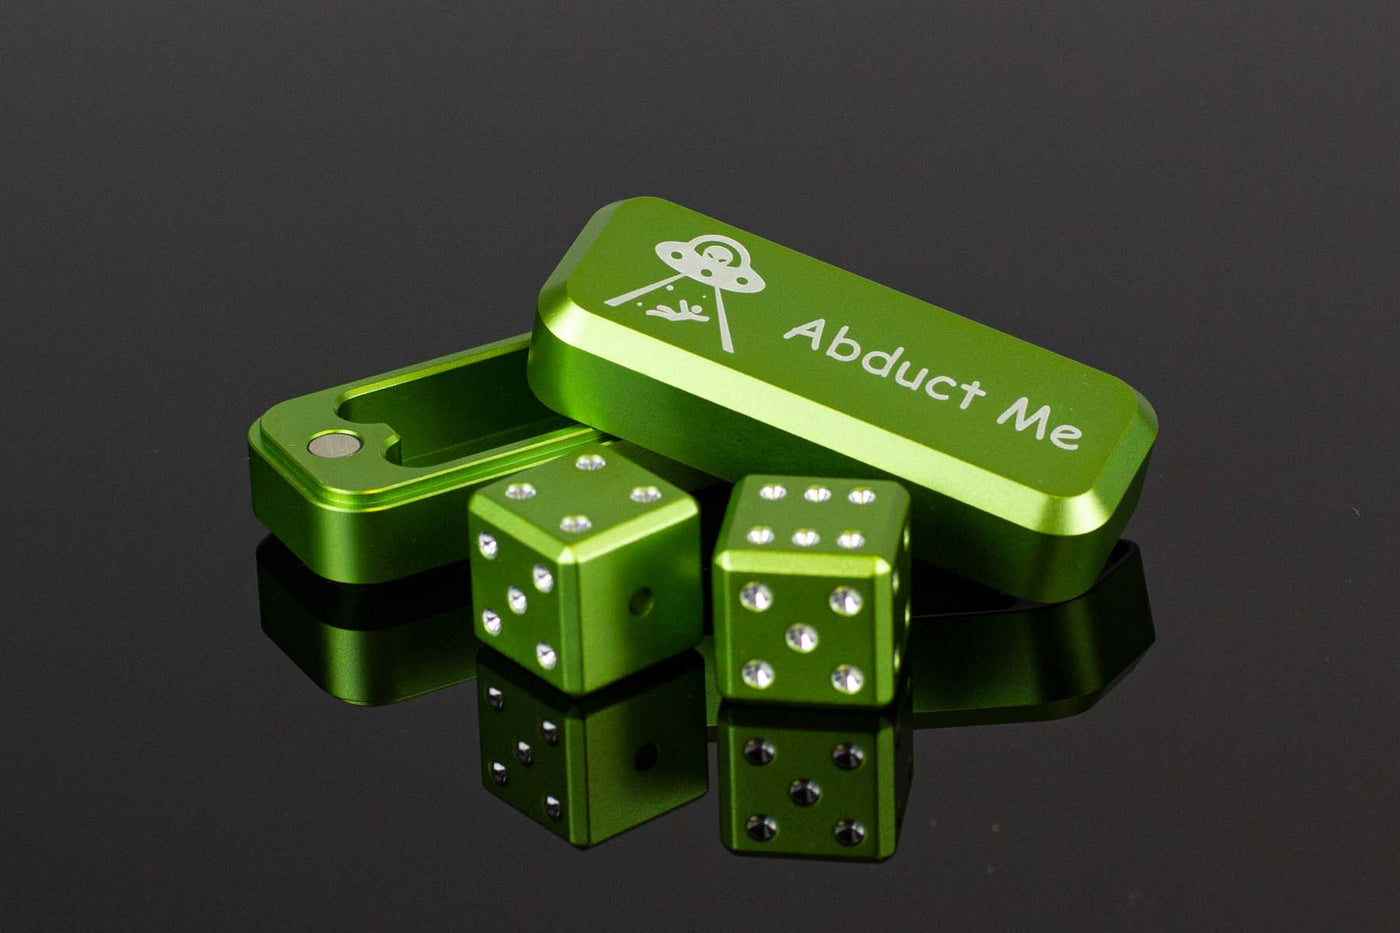 Alien Green 2 Dice w/ Case + FREE Alien Glasses - GRAVITY DICE